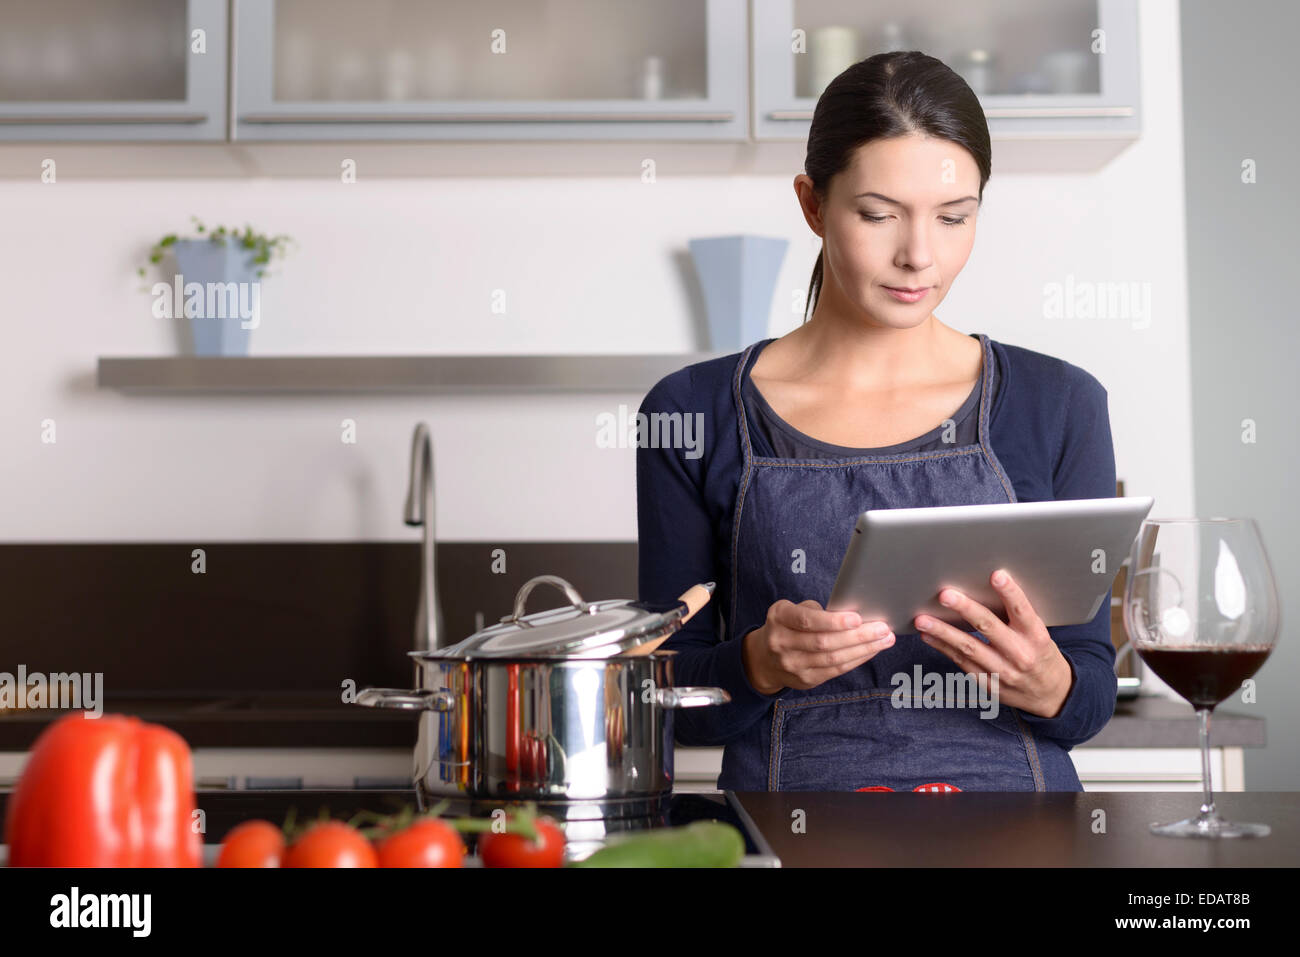 Young woman looking at a recipe on her tablet as she stands in the kitchen in front of a saucepan on the stove - Stock Image